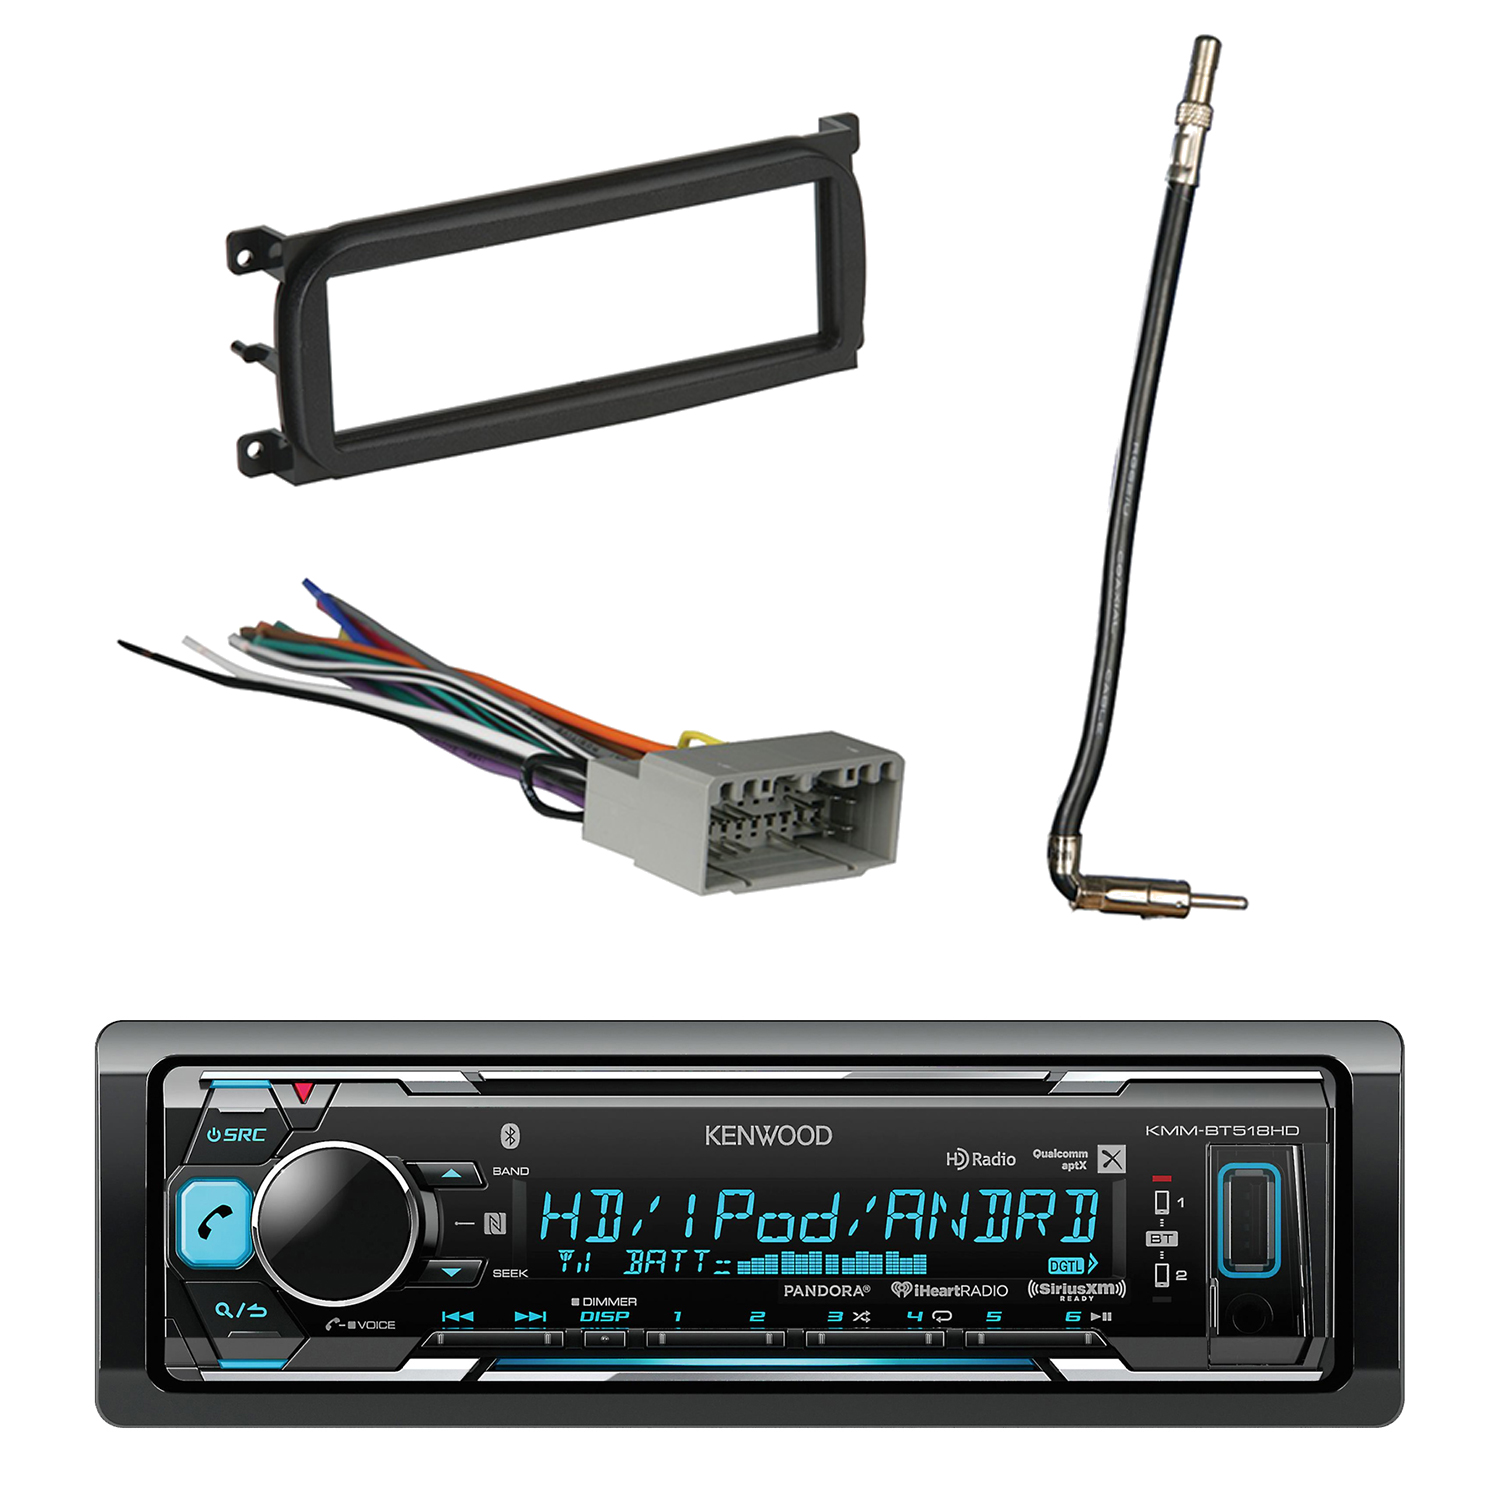 Kenwood In-Dash Stereo Receiver, Bluetooth, HD Radio, Pan...